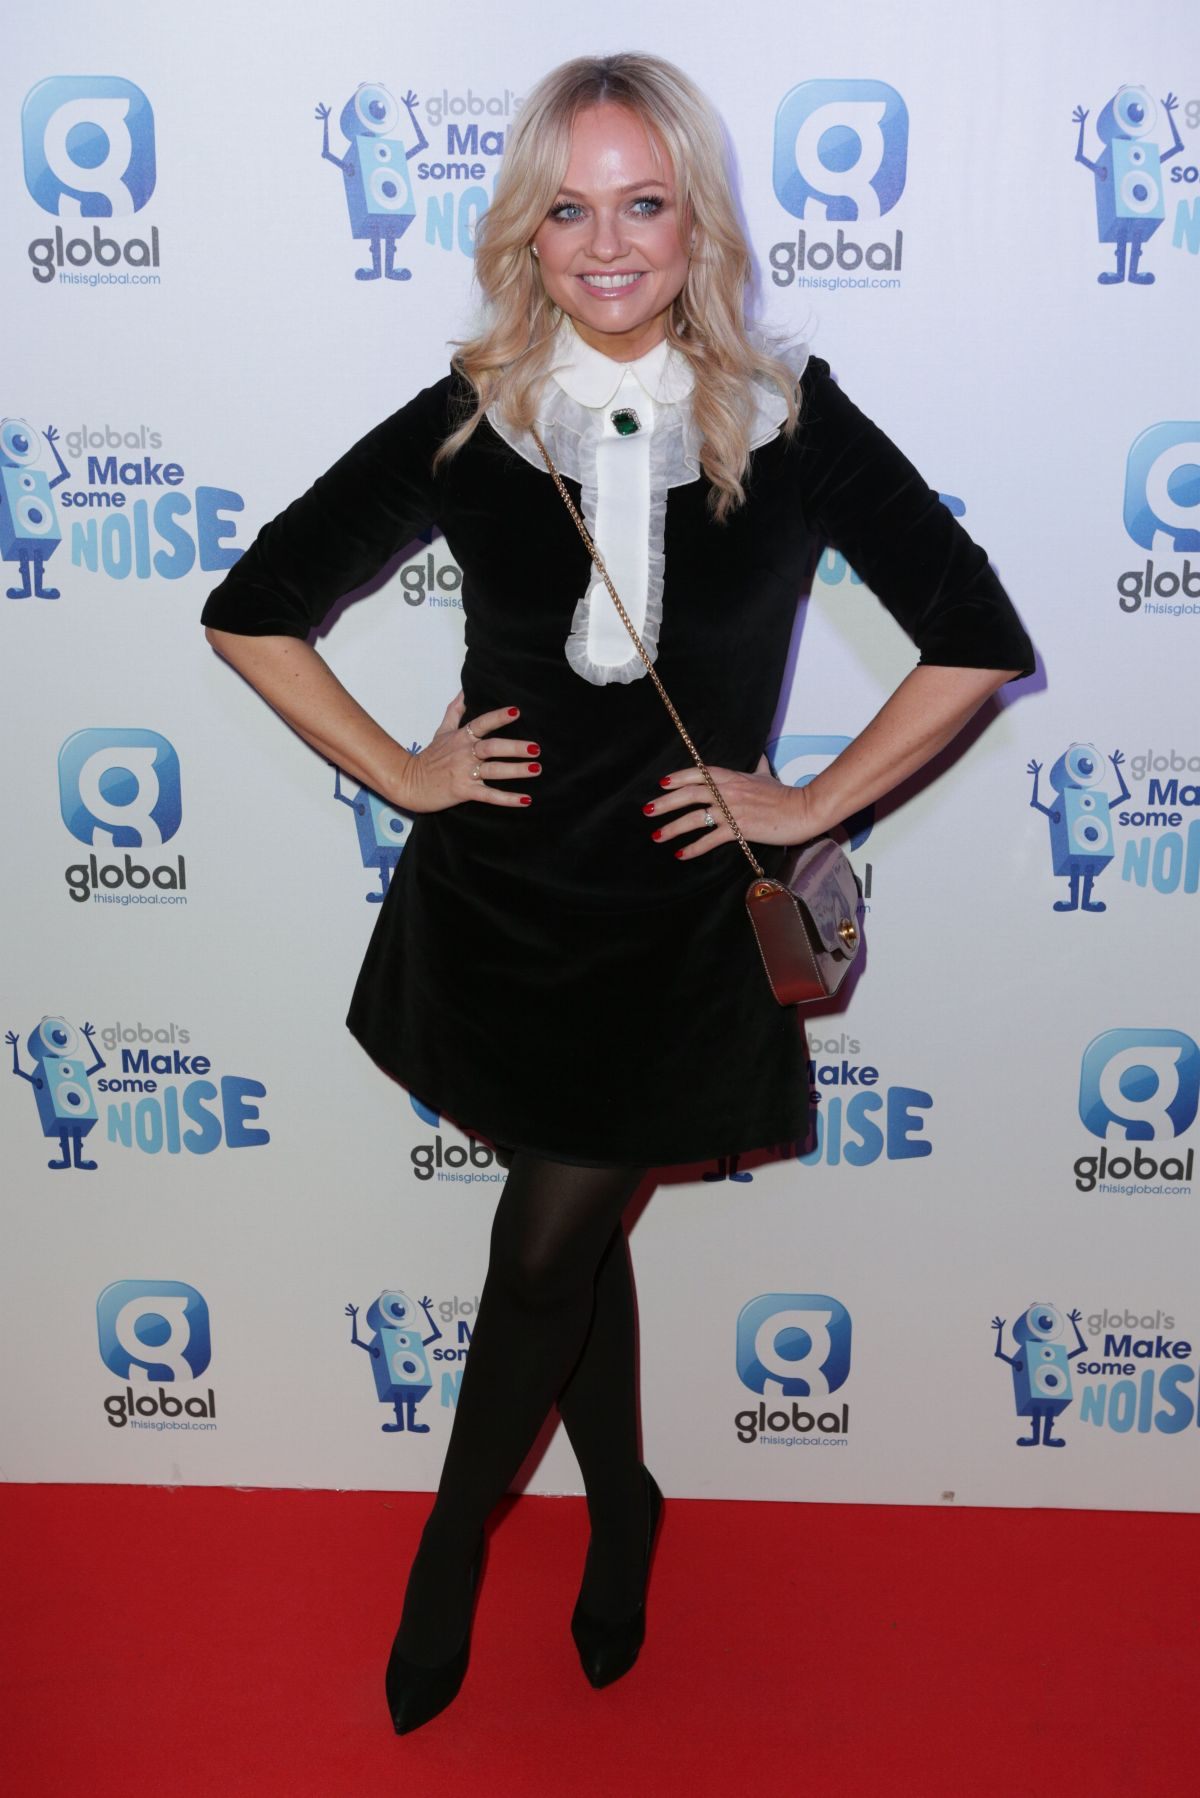 EMMA BUNTON at Global